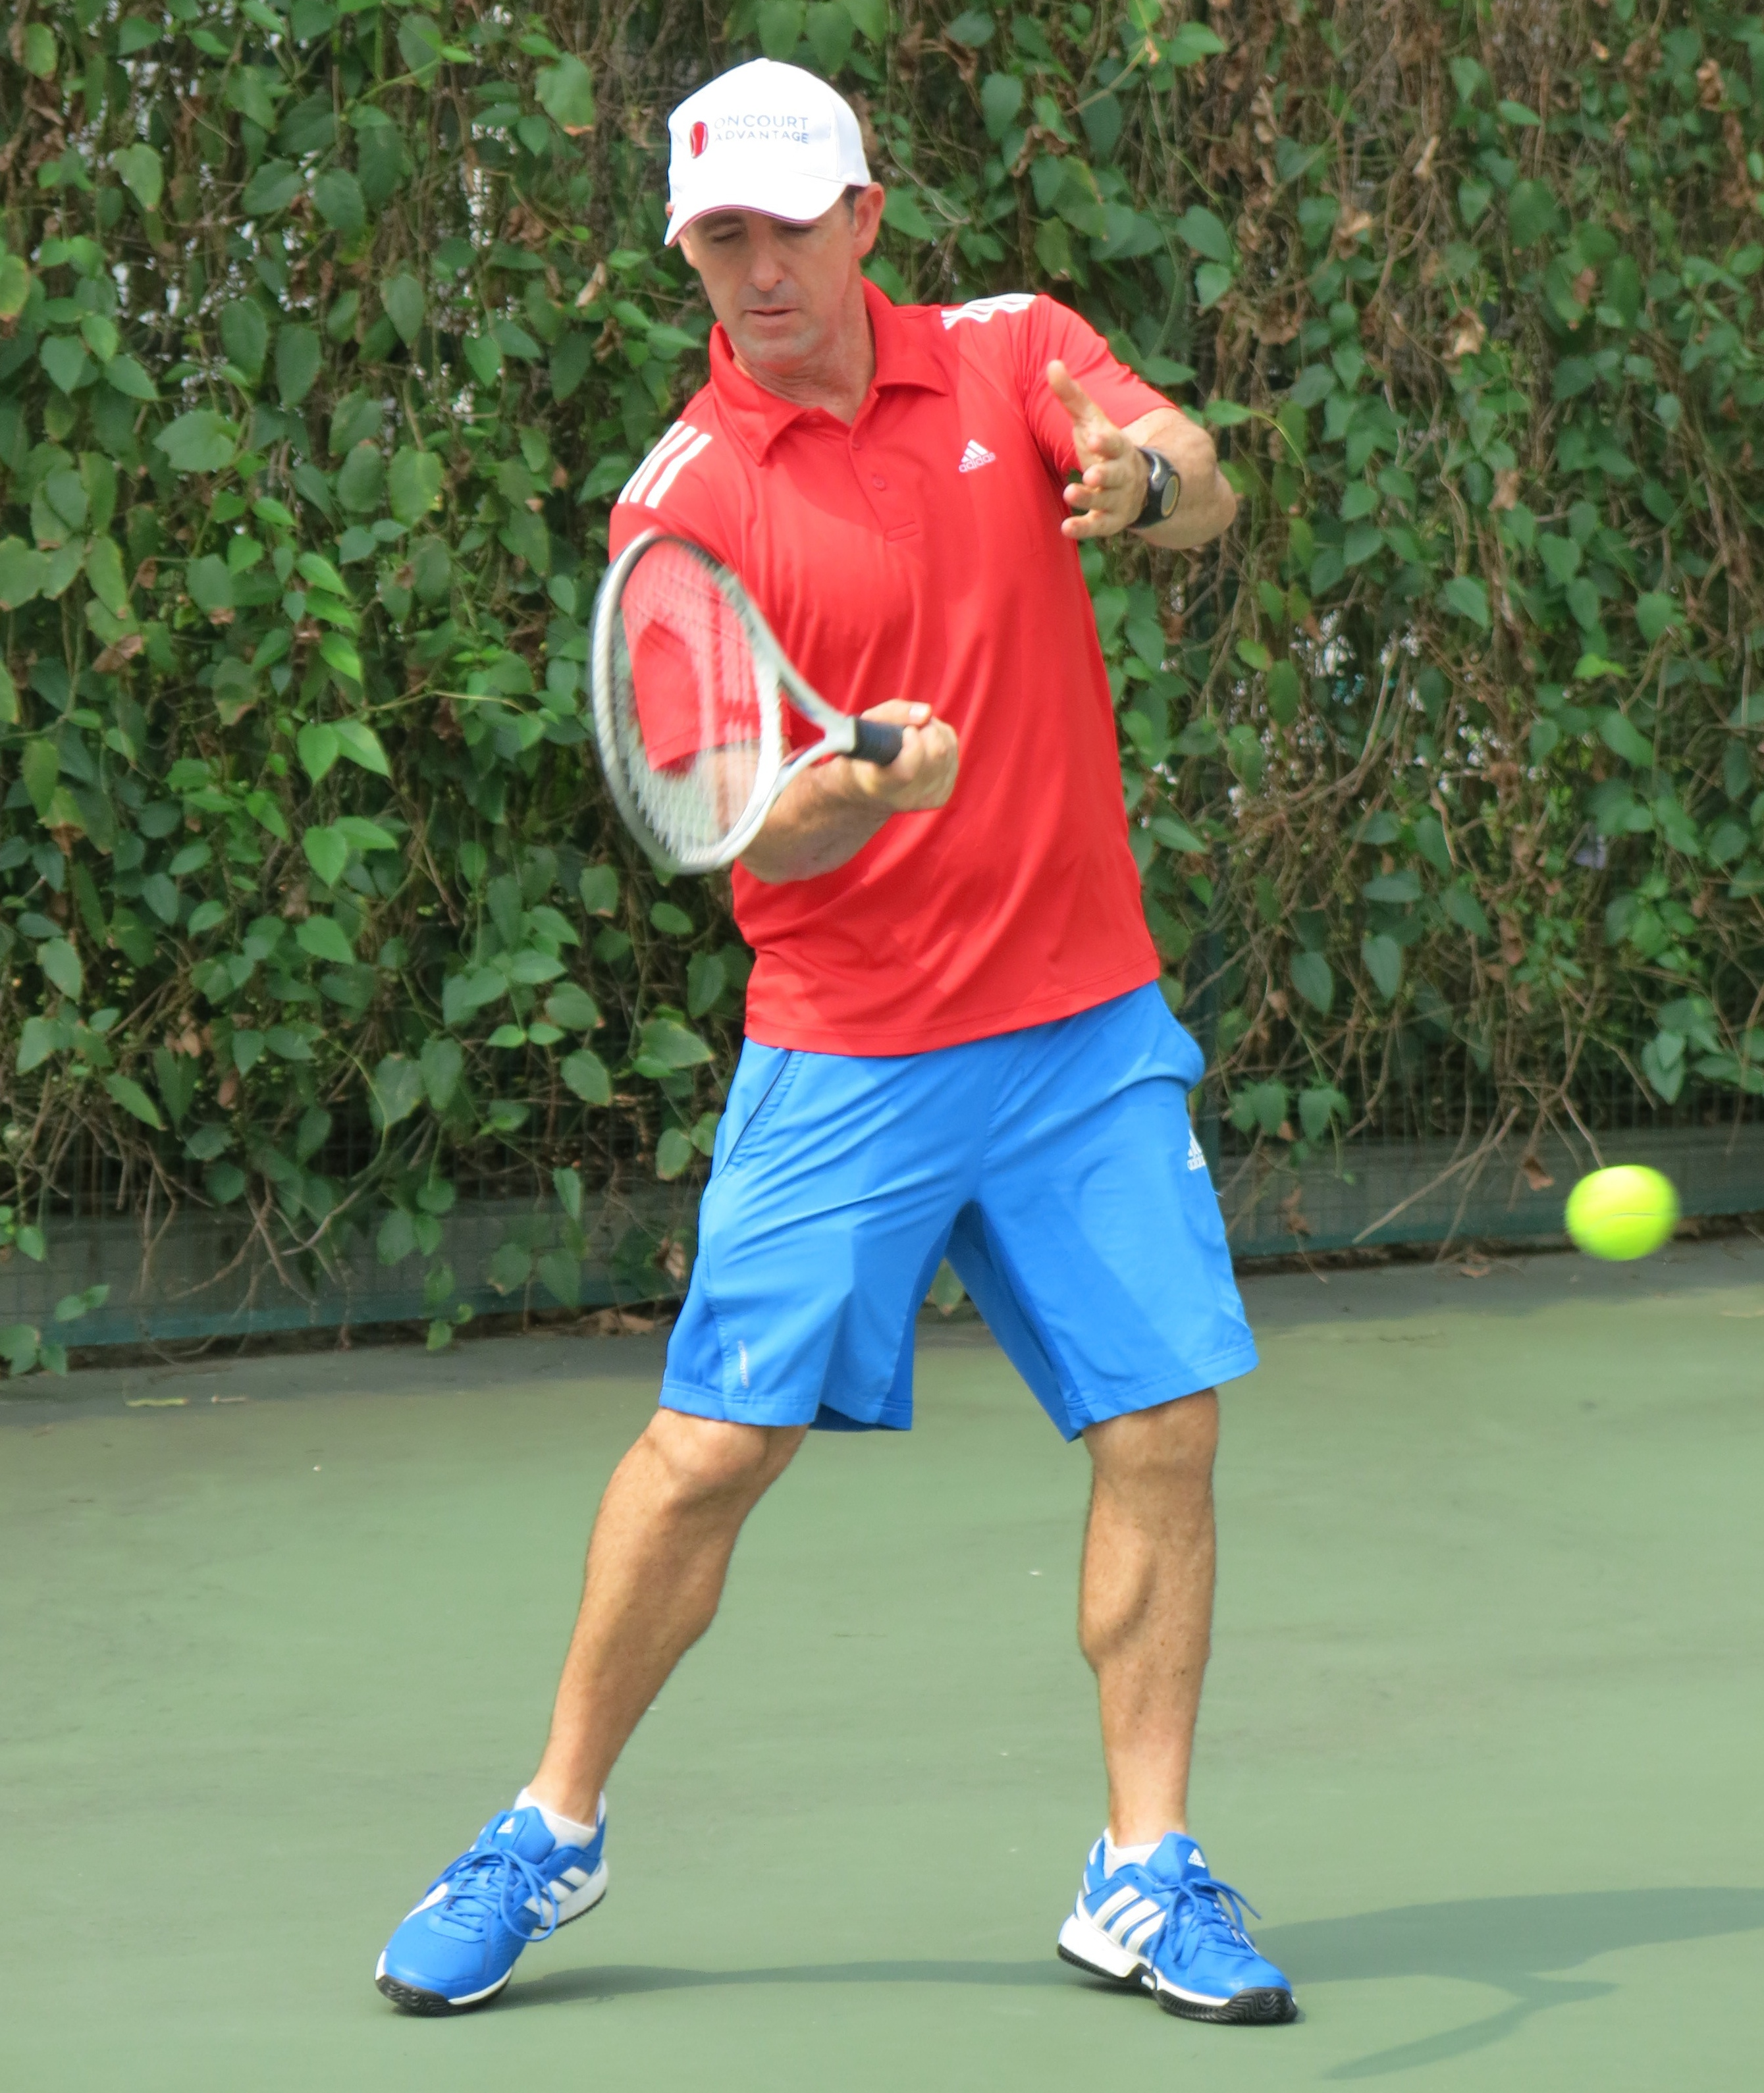 Tennis Lessons Singapore email info@oncourtadvantage.com or text +65 9830 2678 Jay smooth forehand after contact point